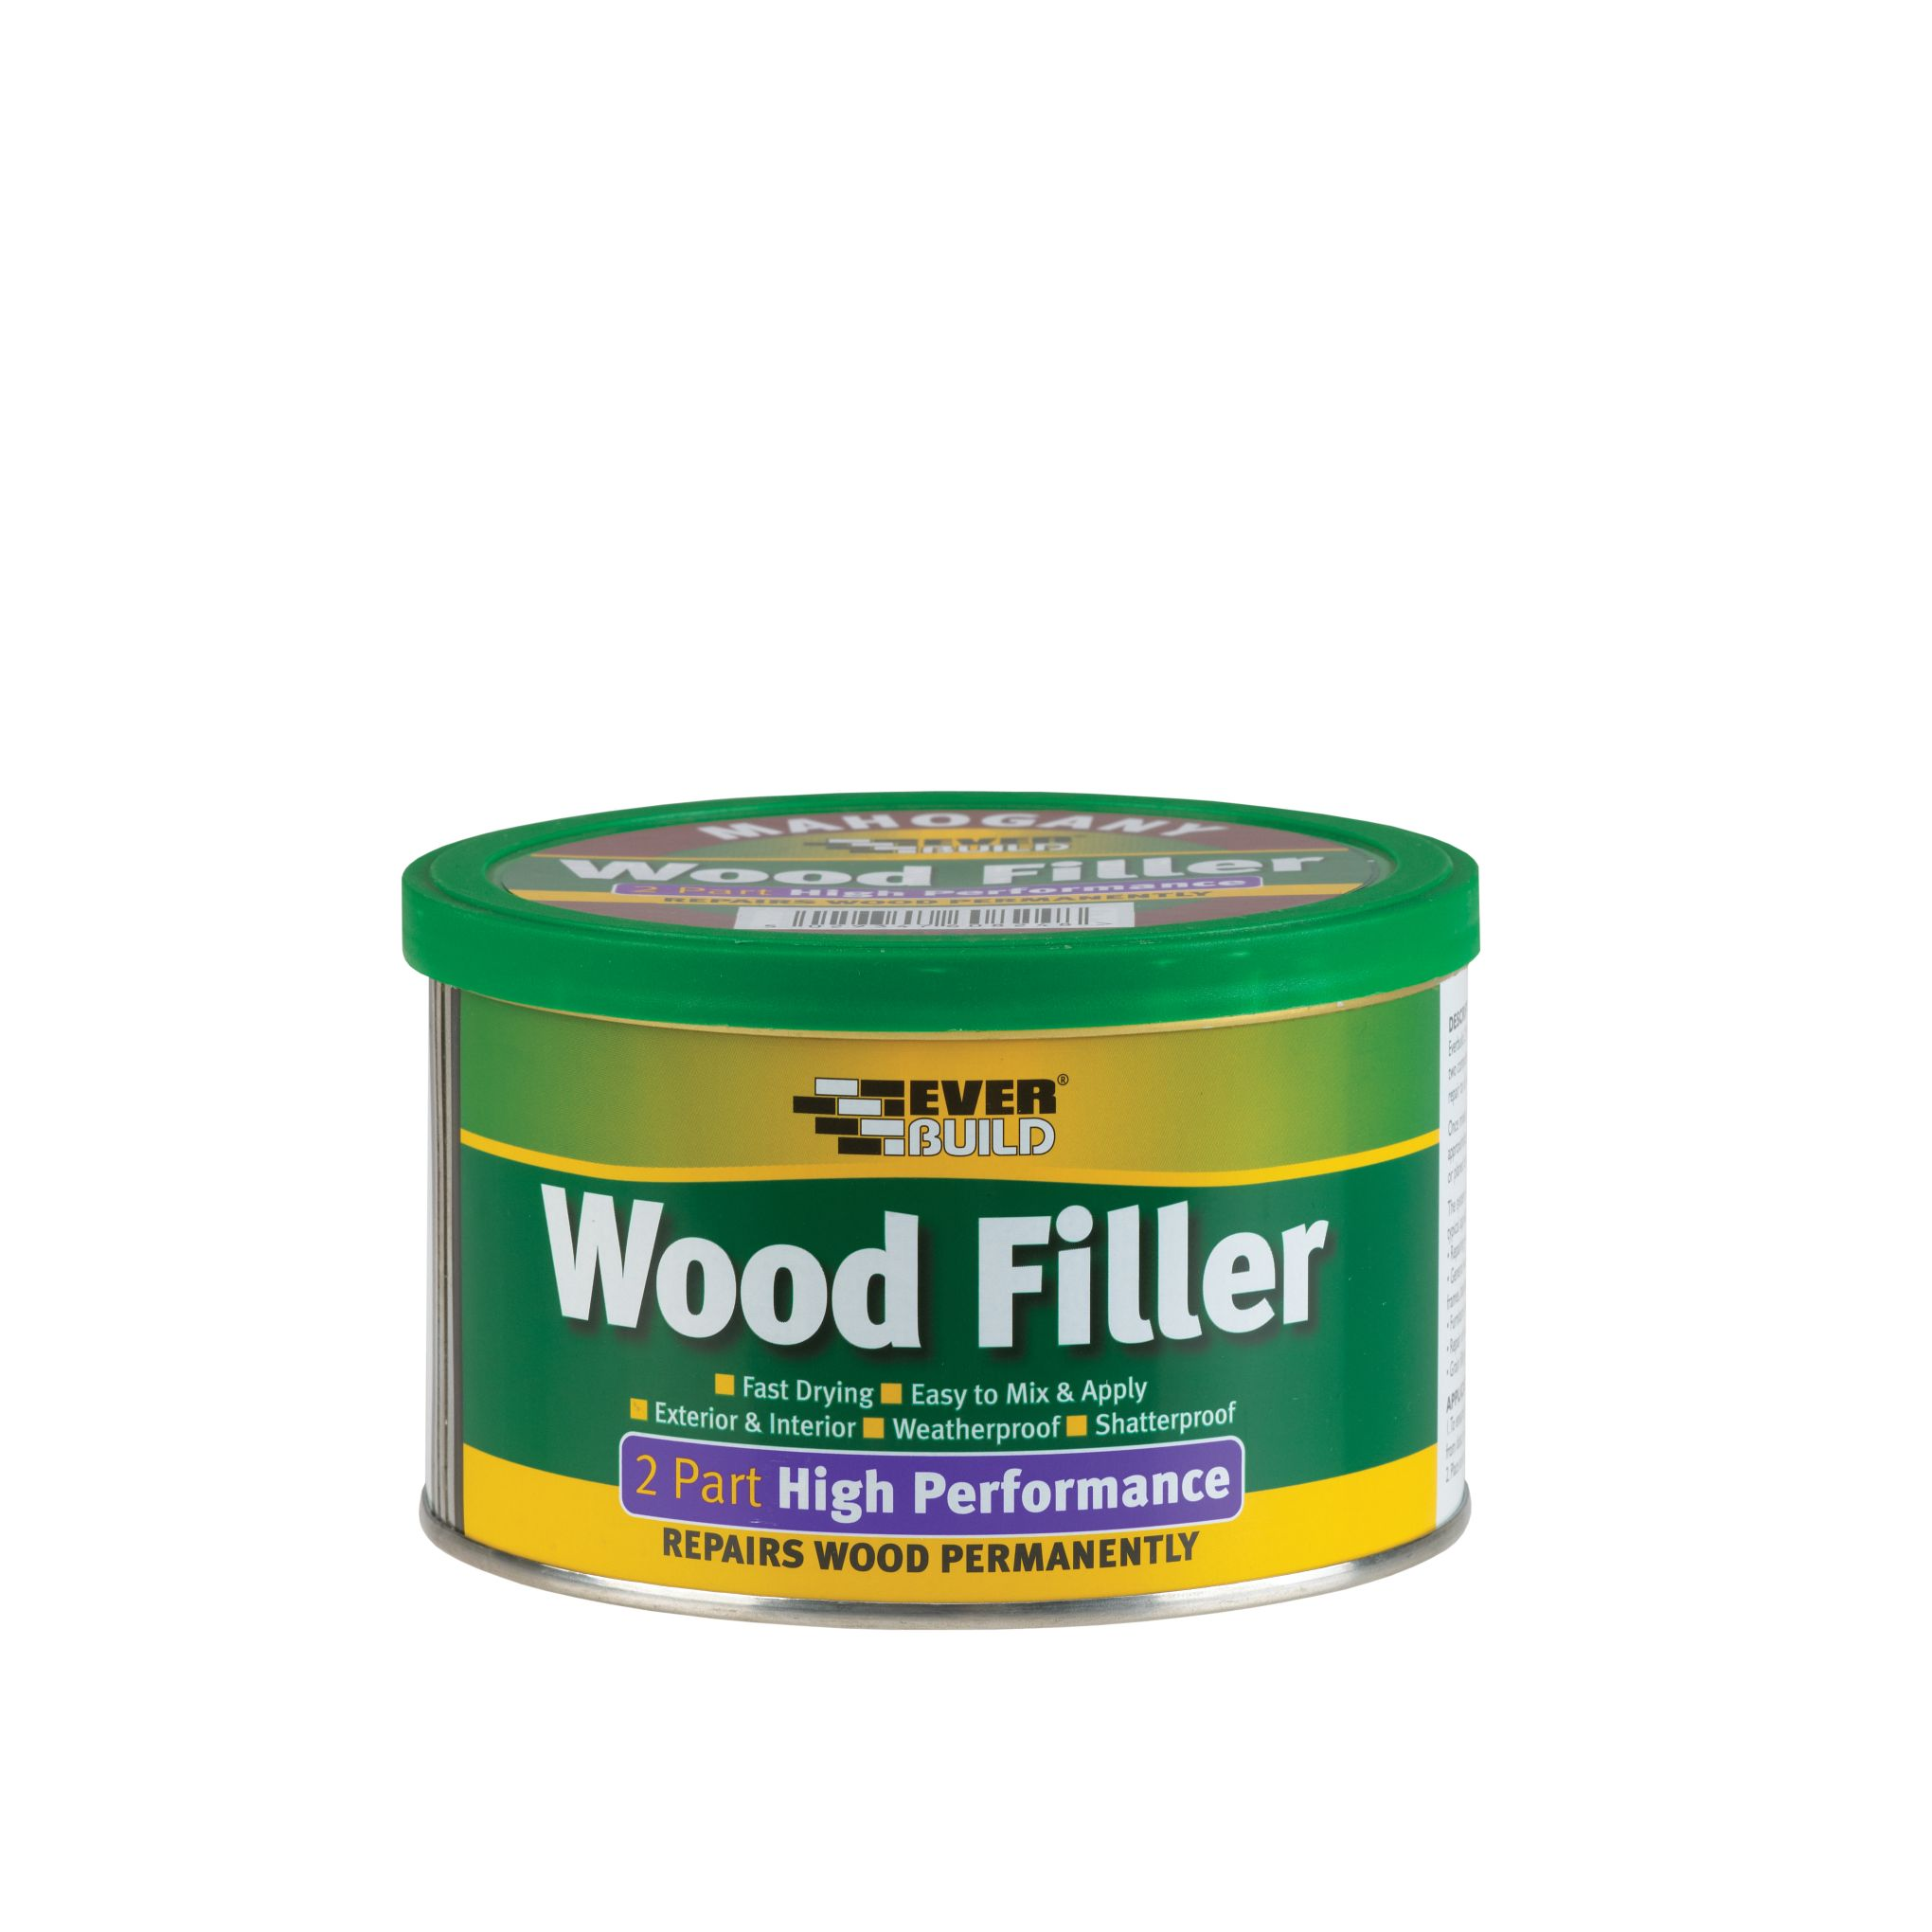 HIGH PERFORMANCE 2-PART WOOD FILLER 500G MAHOGANY